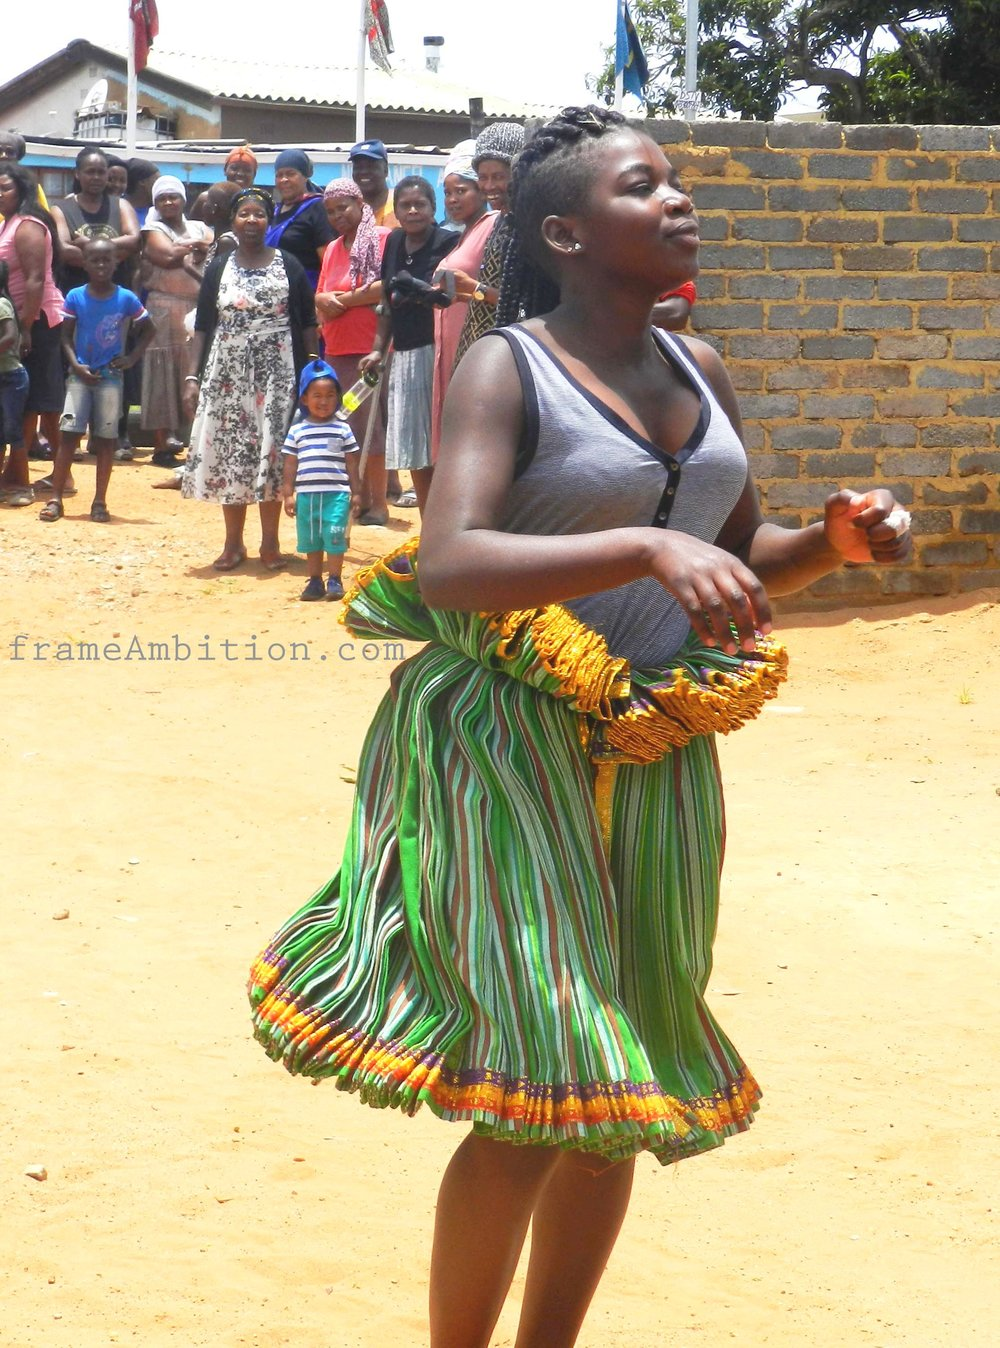 soweto_girl_dancing_venda_frameambition_joburg_travel_guide.jpg